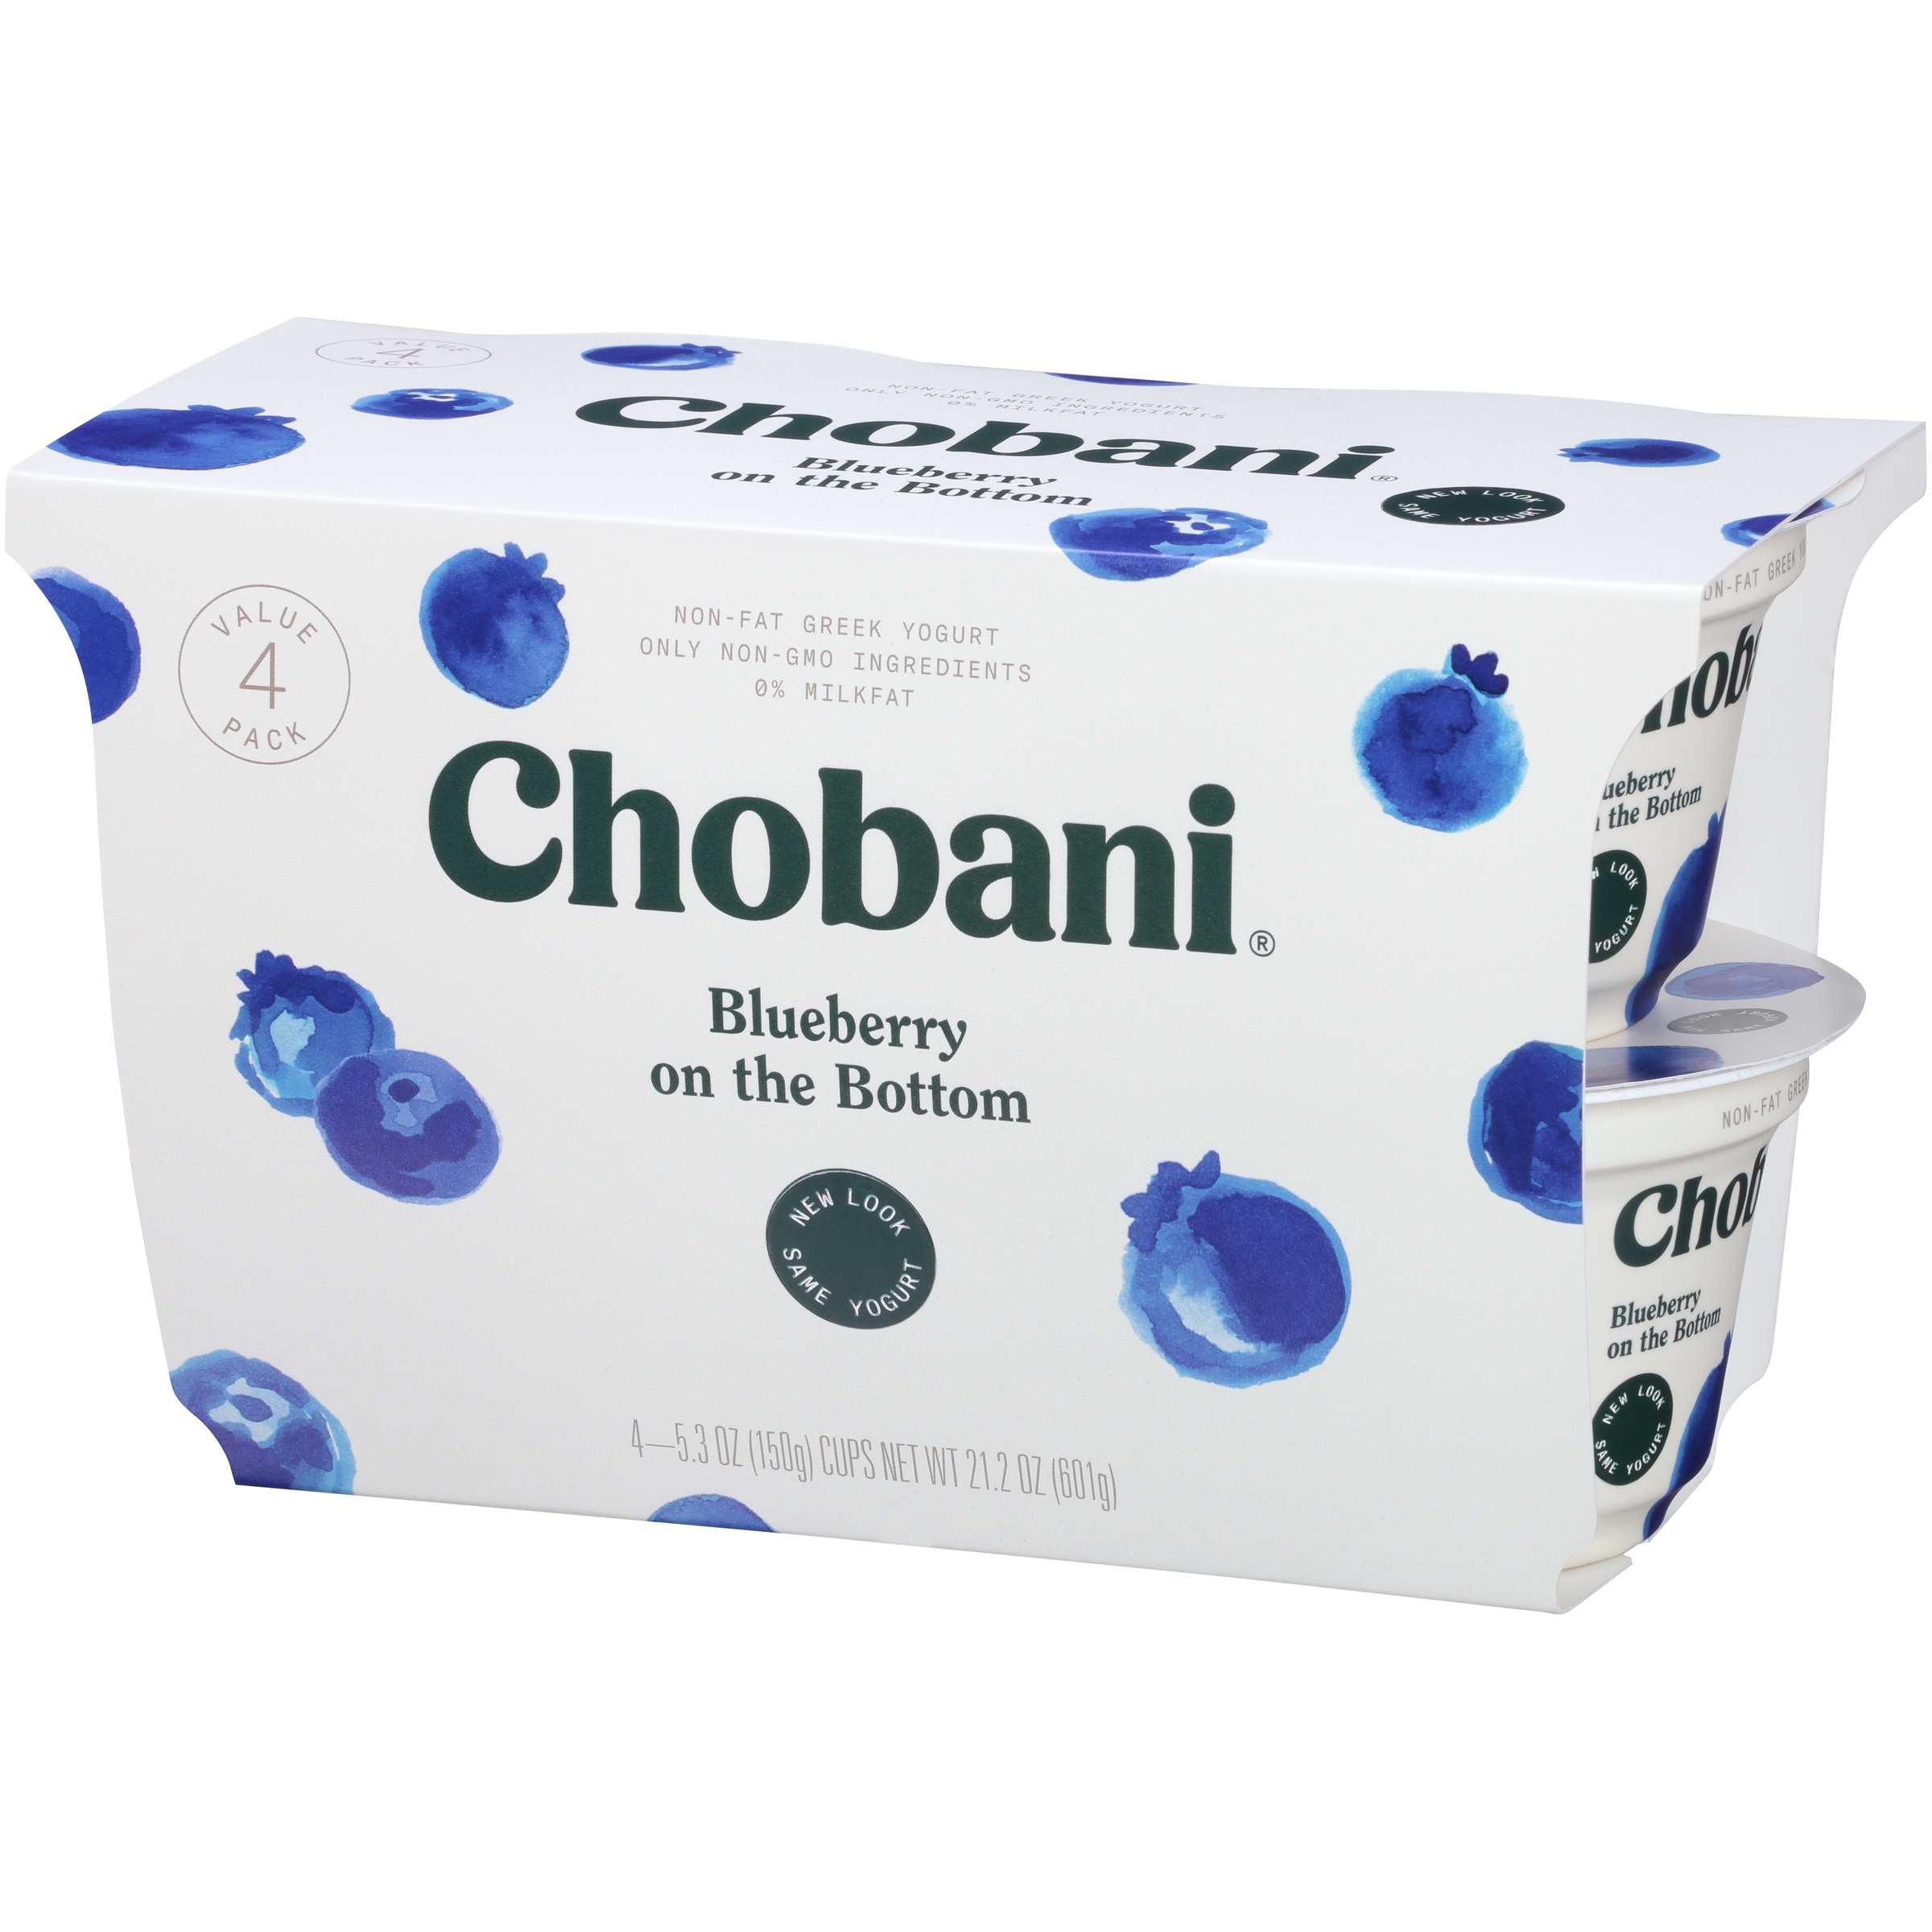 Chobani Greek Yogurt Blueberry on the Bottom, 5.3 oz, 4 Count Pack